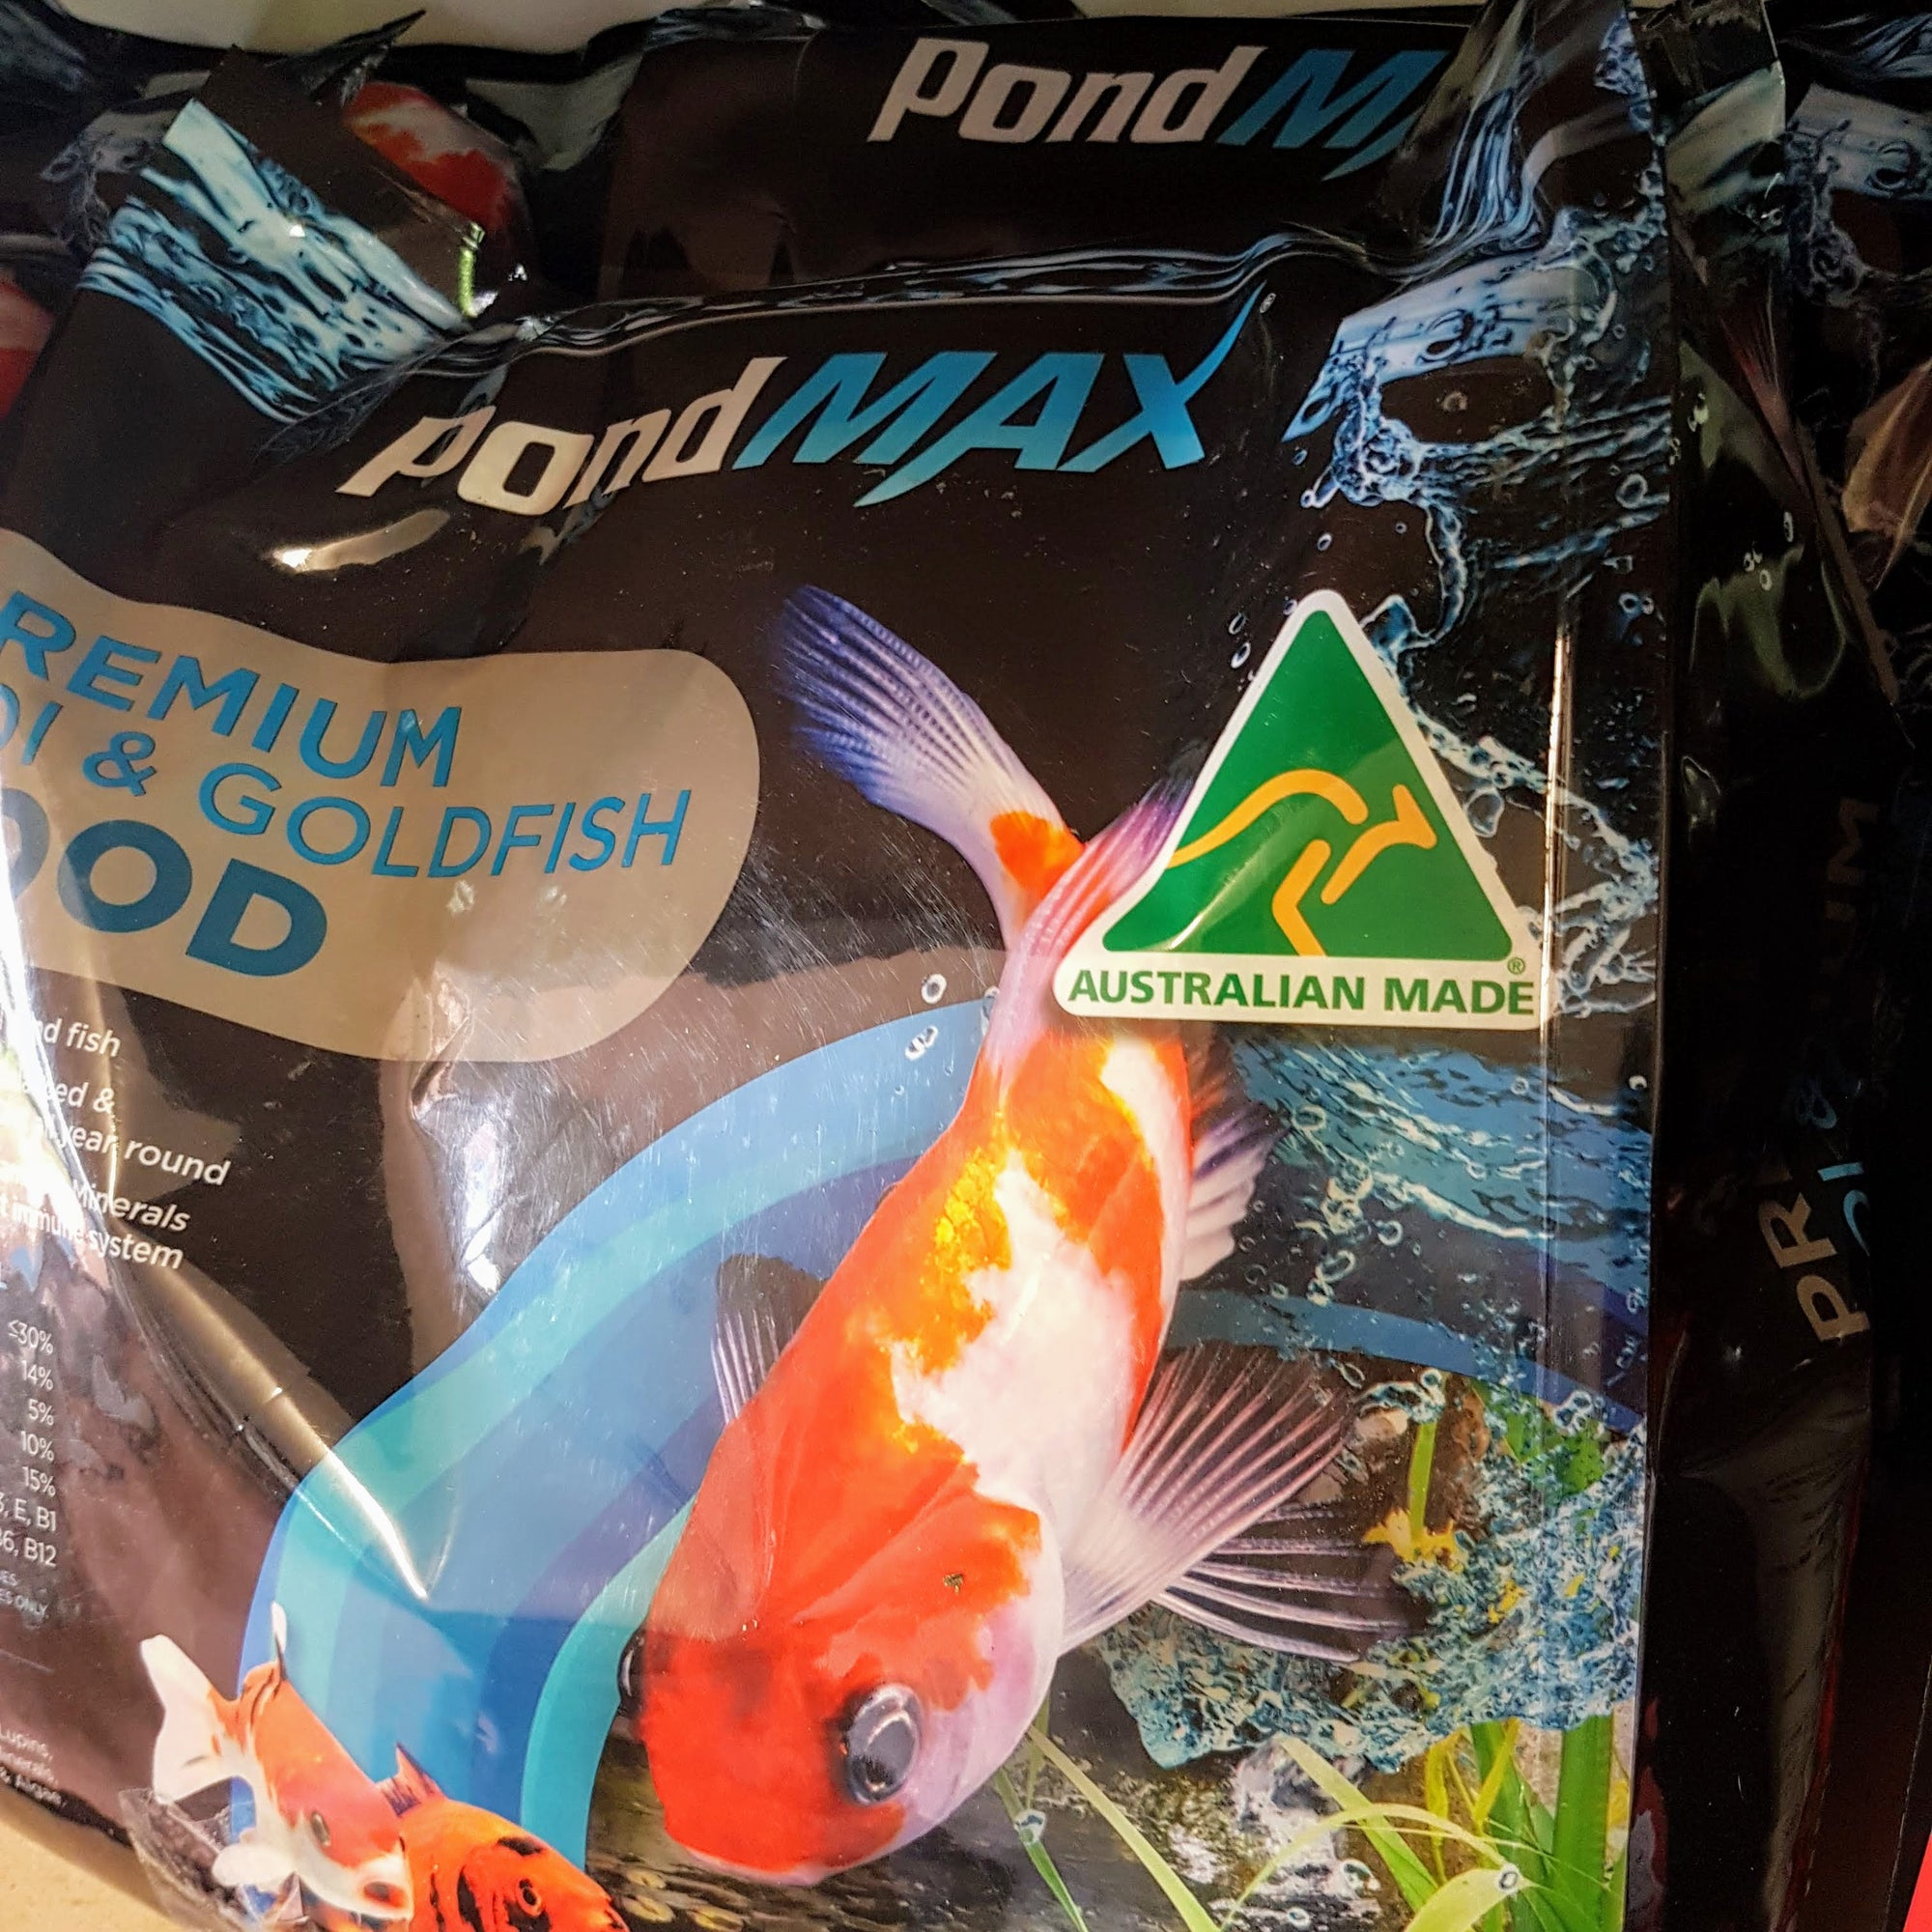 Pondmax Premium Australian Made Fish Food